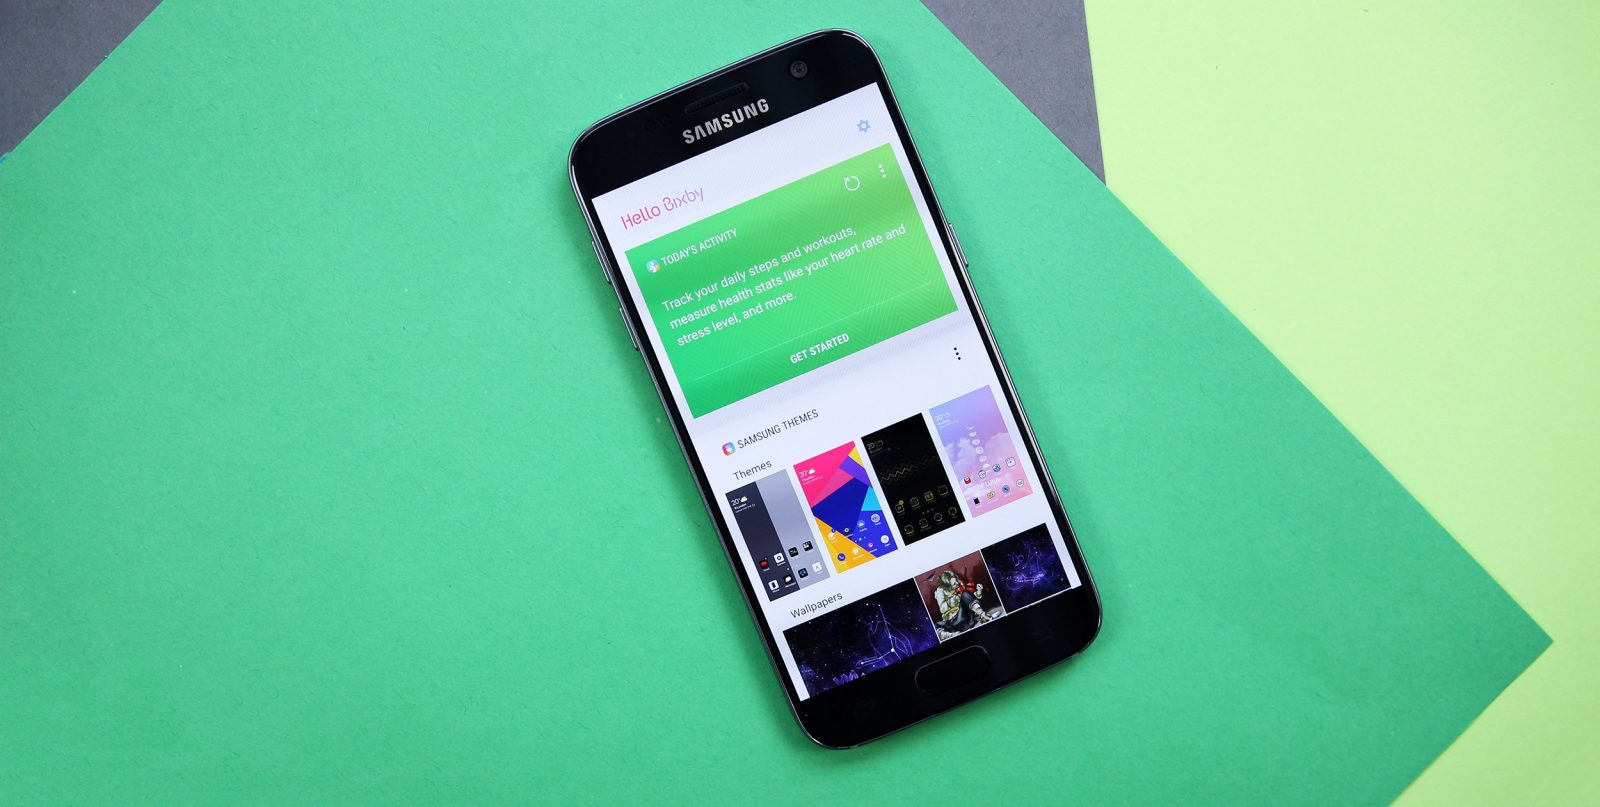 Replace your broken phone with this refurb. Galaxy S7: $163.50 (Orig. $669)